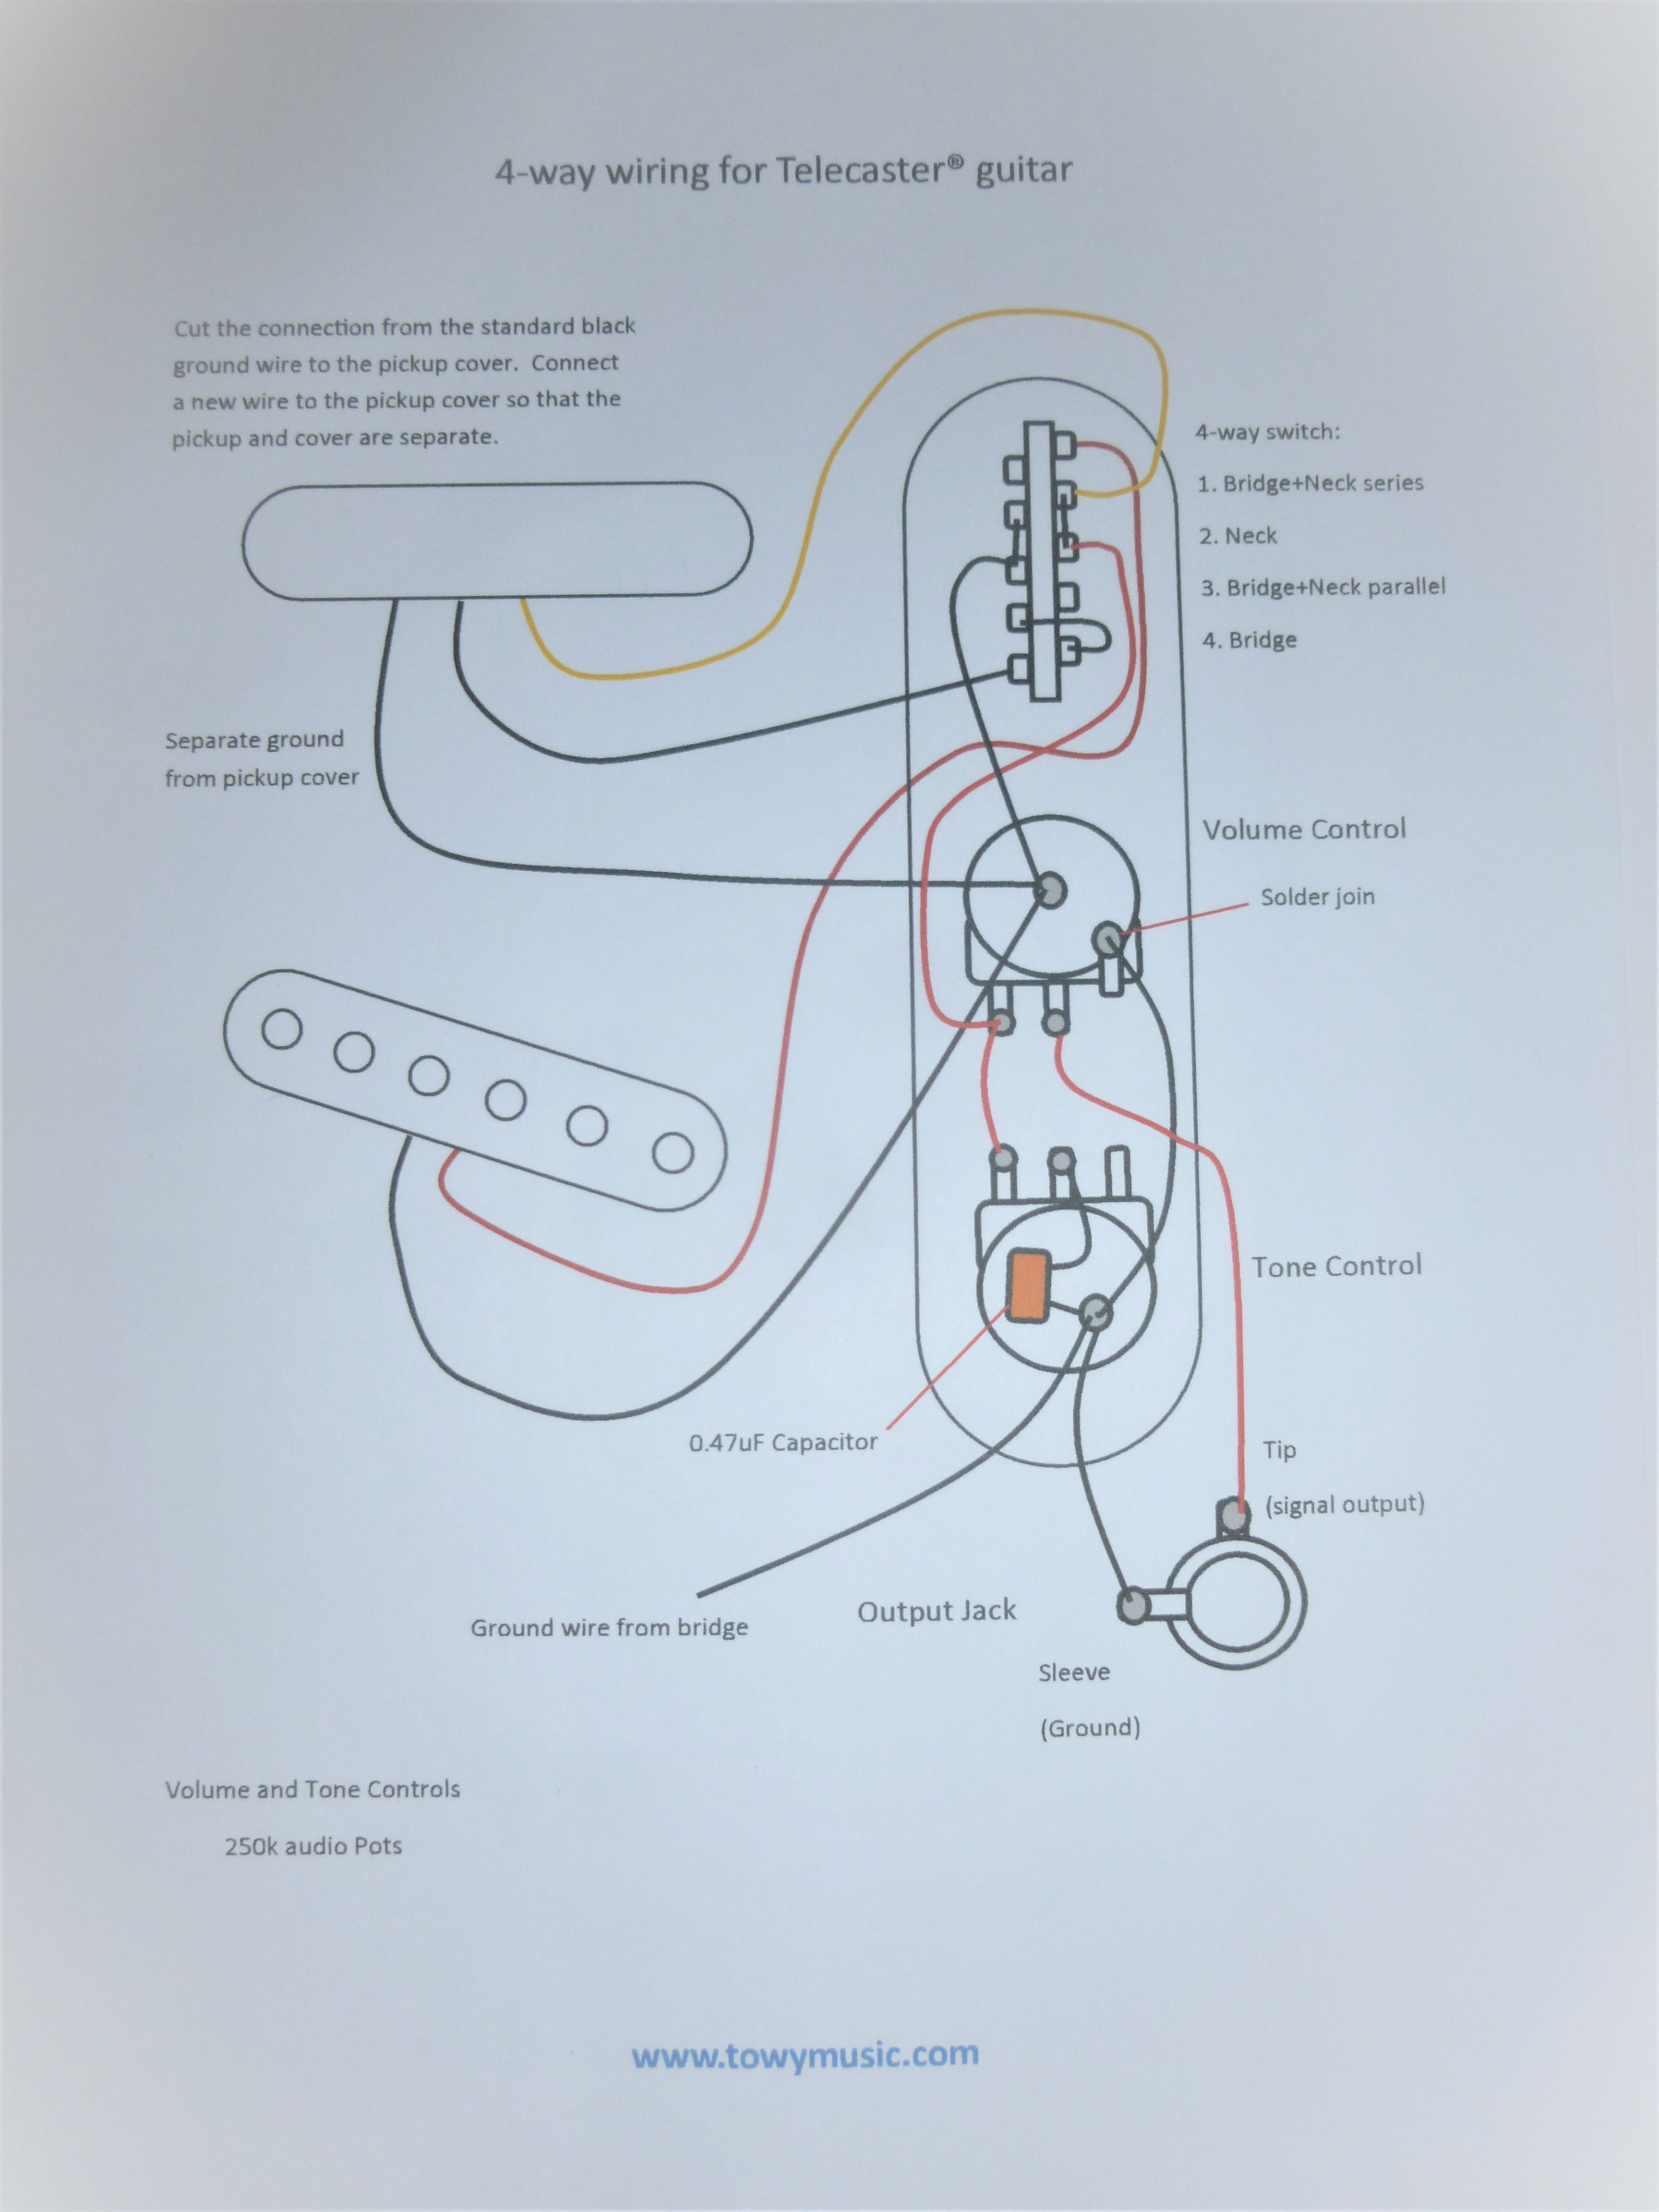 Telecaster Series Wiring Using A 3 Way Switch Diagram from i1.wp.com